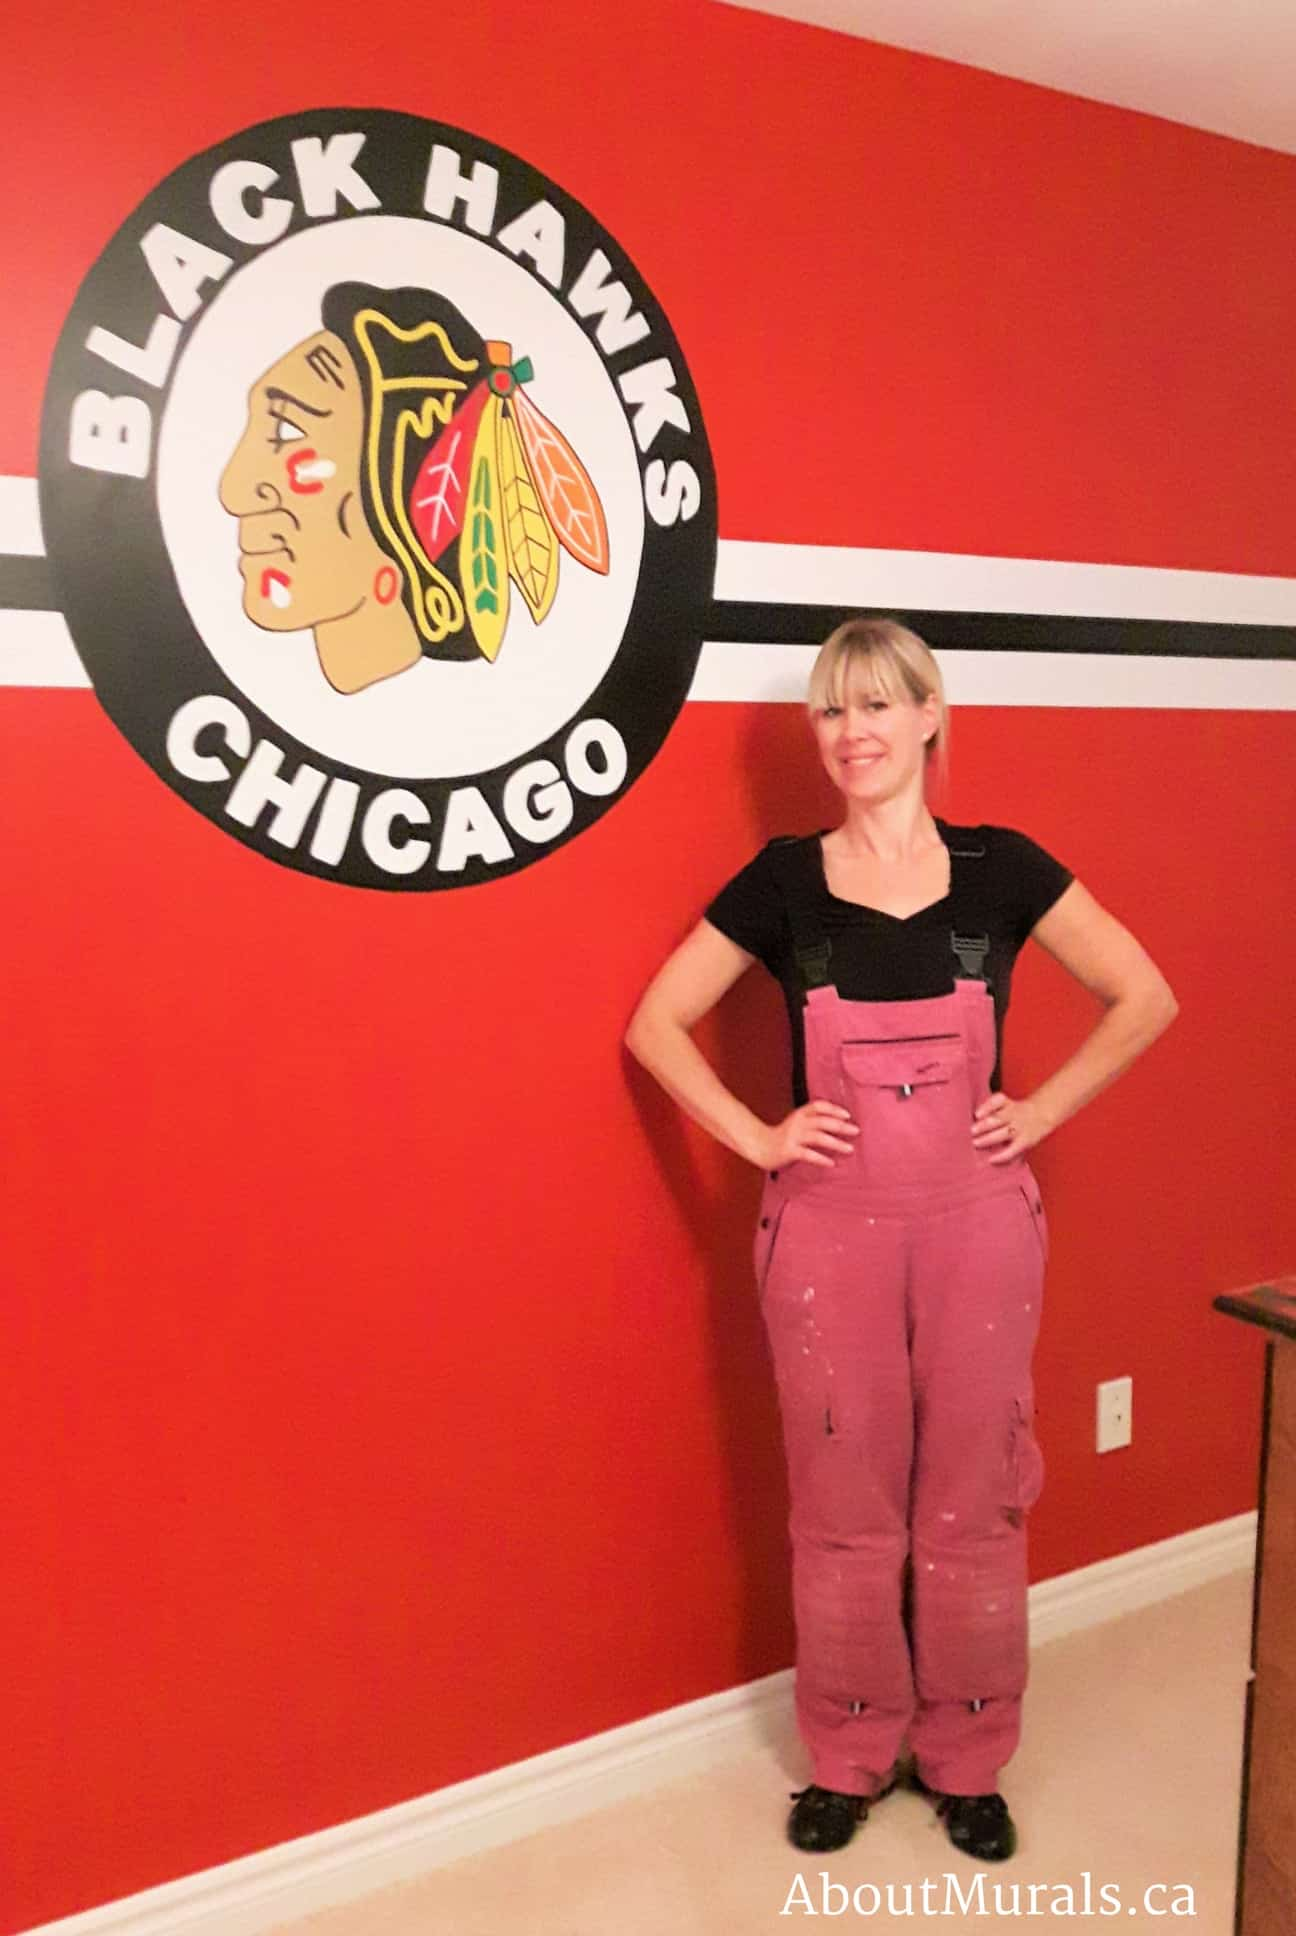 Muralist Adrienne Scanlan stands next to a Chicago Blackhawks logo she painted